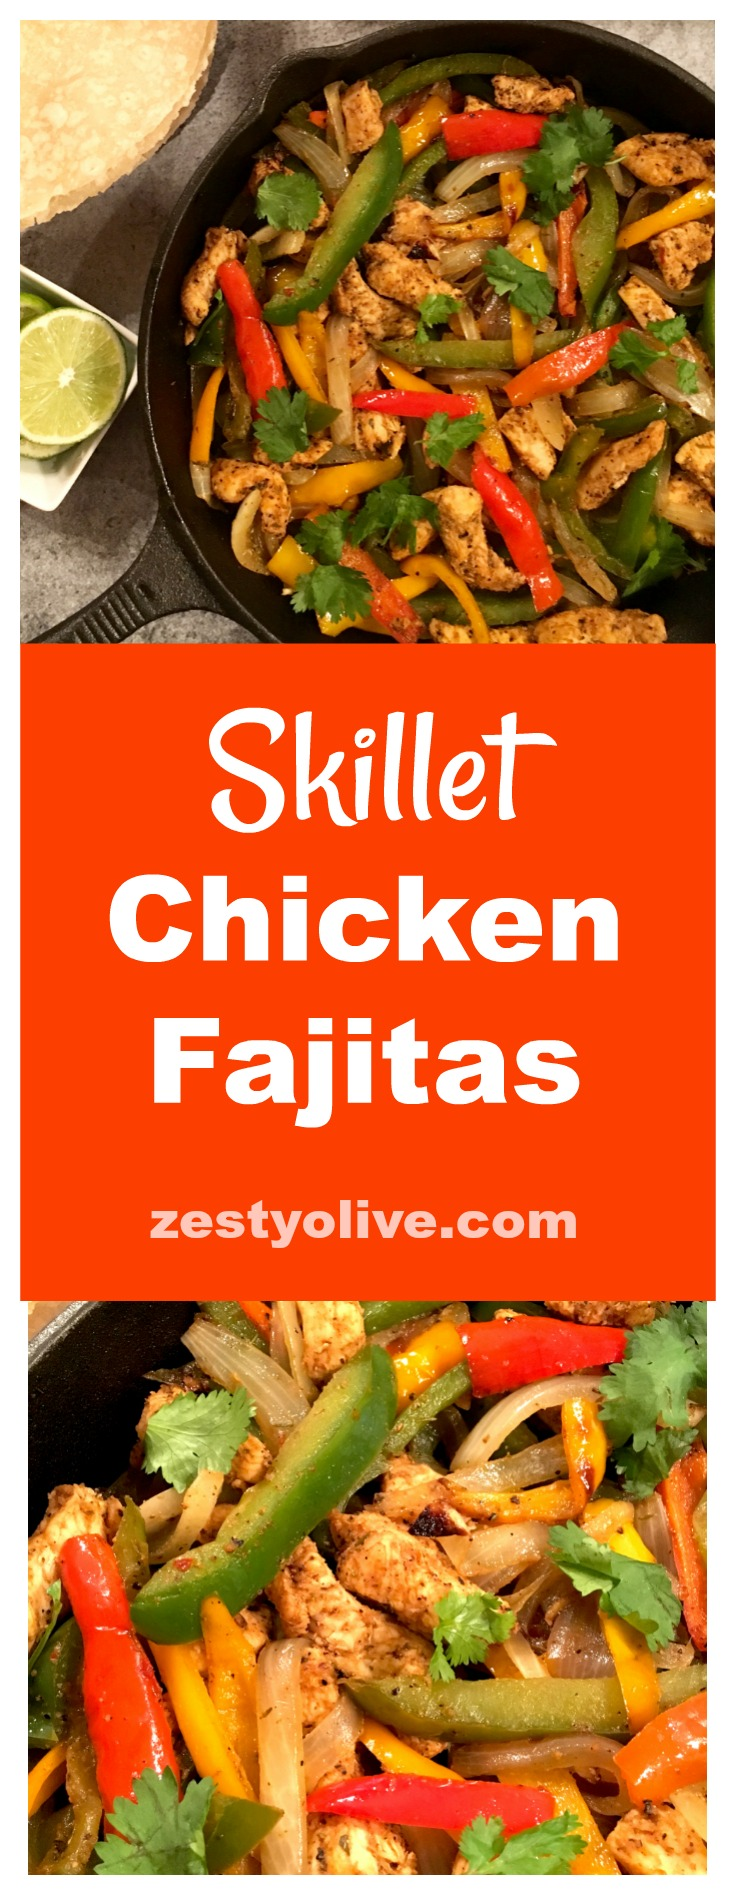 Here's my take on easy, zesty, skillet chicken fajitas, sizzled to perfection in a cast iron skillet.